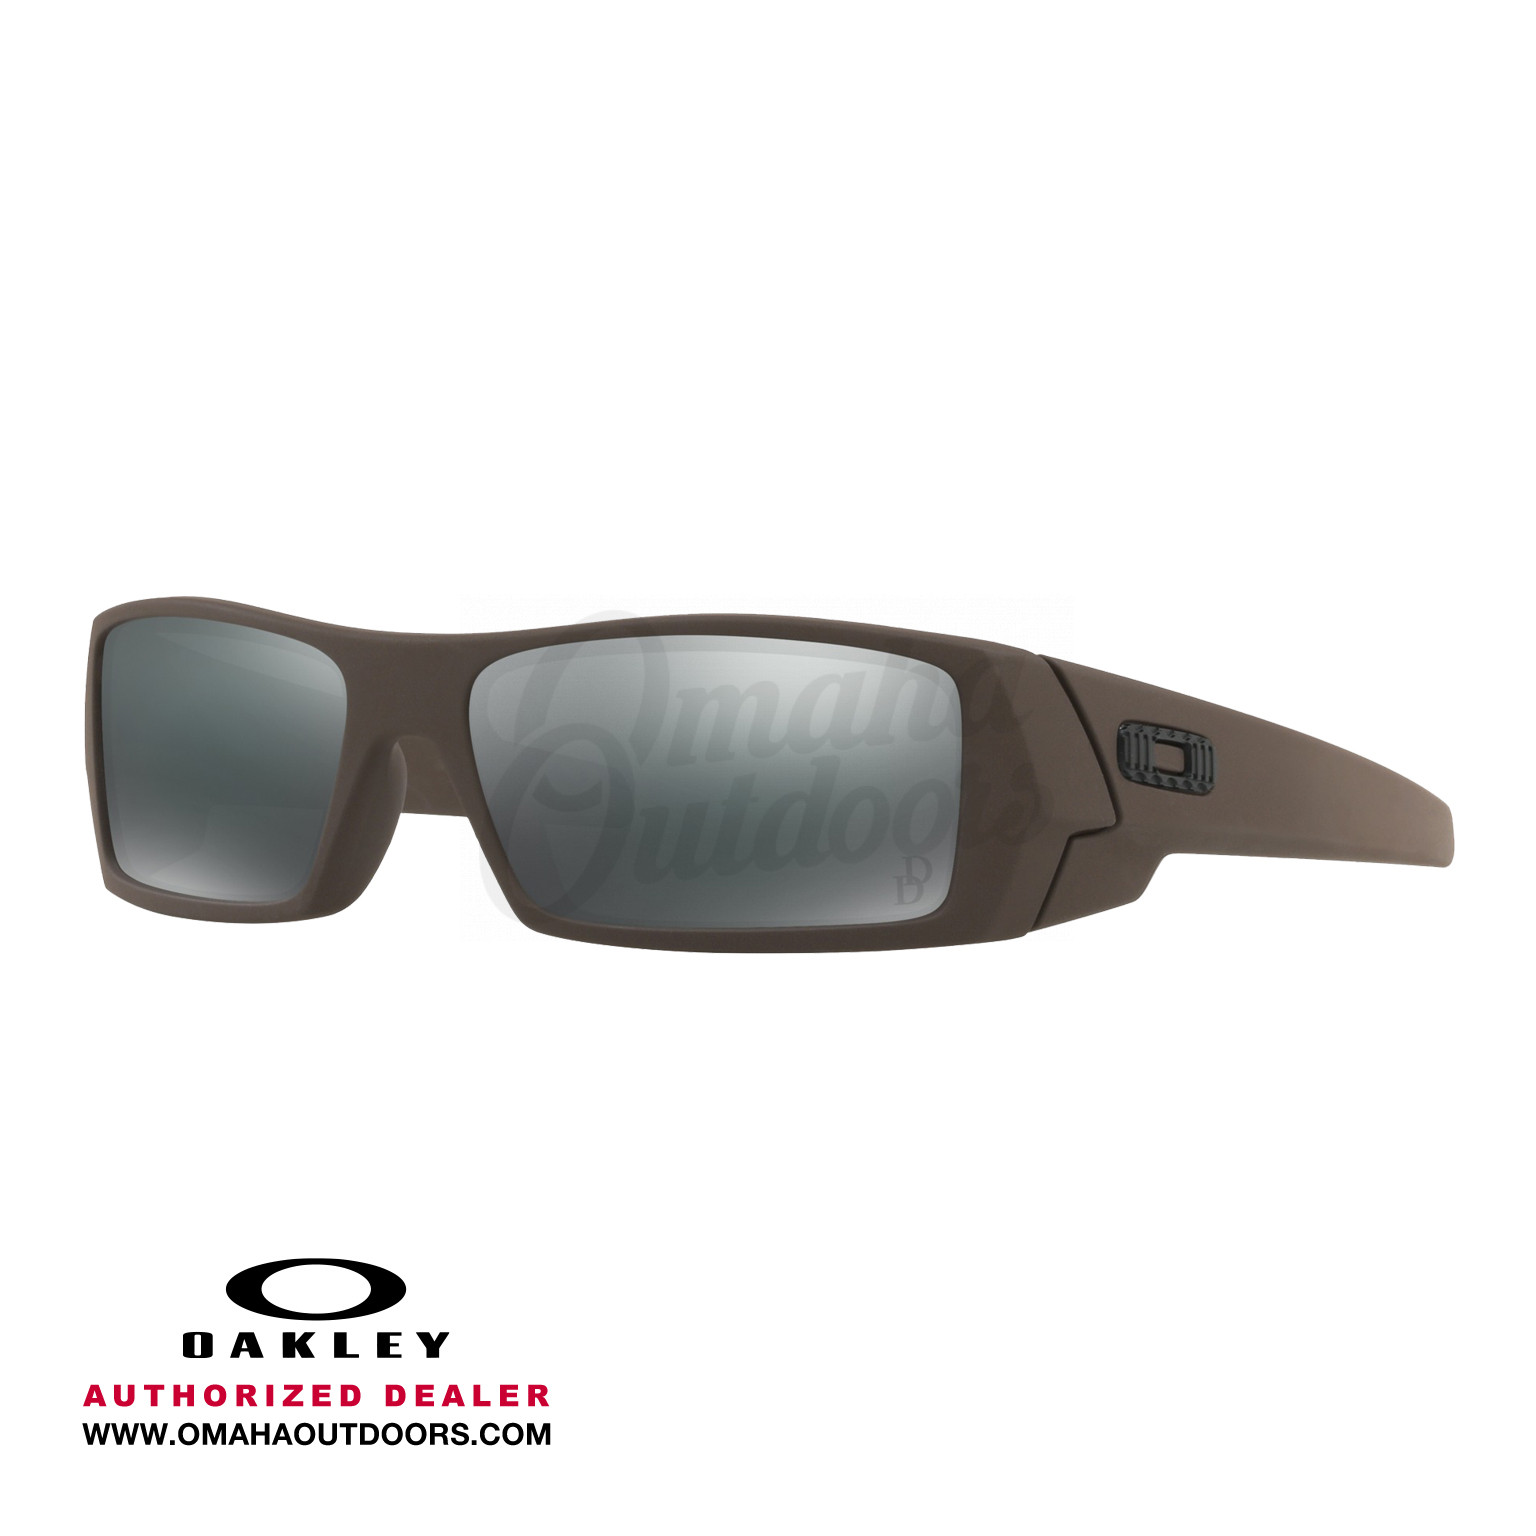 f90644fa833 Oakley Daniel Defense Gascan Desert Tan Sunglasses Black Iridium Lens OO9014 -2160